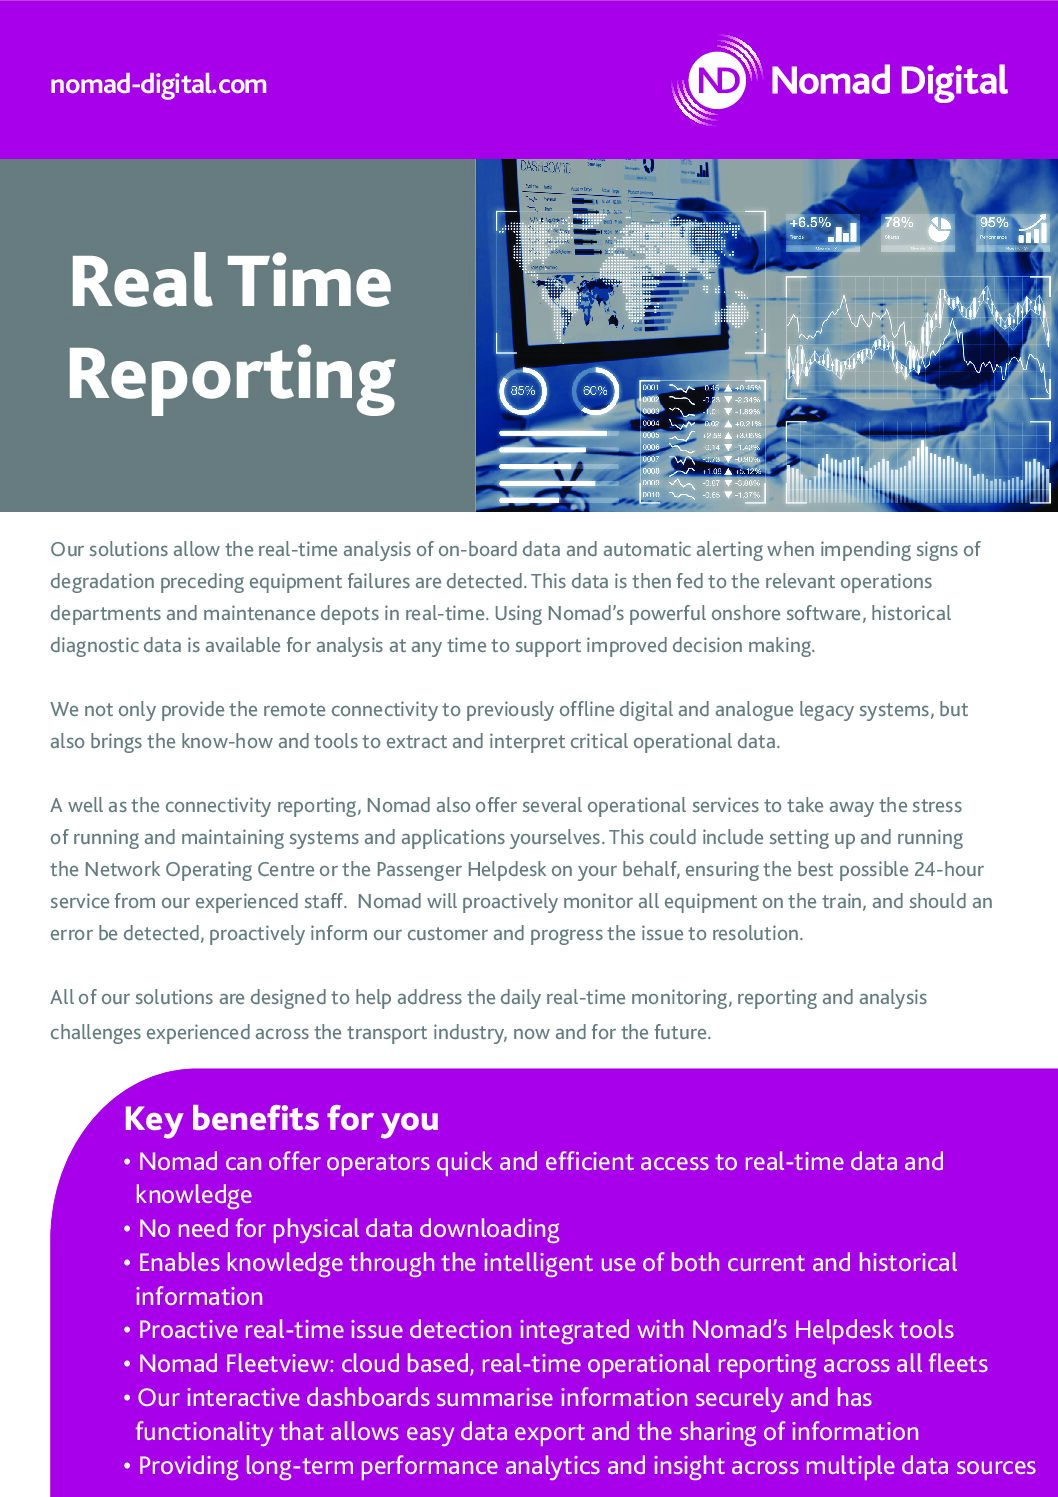 Real Time Reporting and Real Time Management